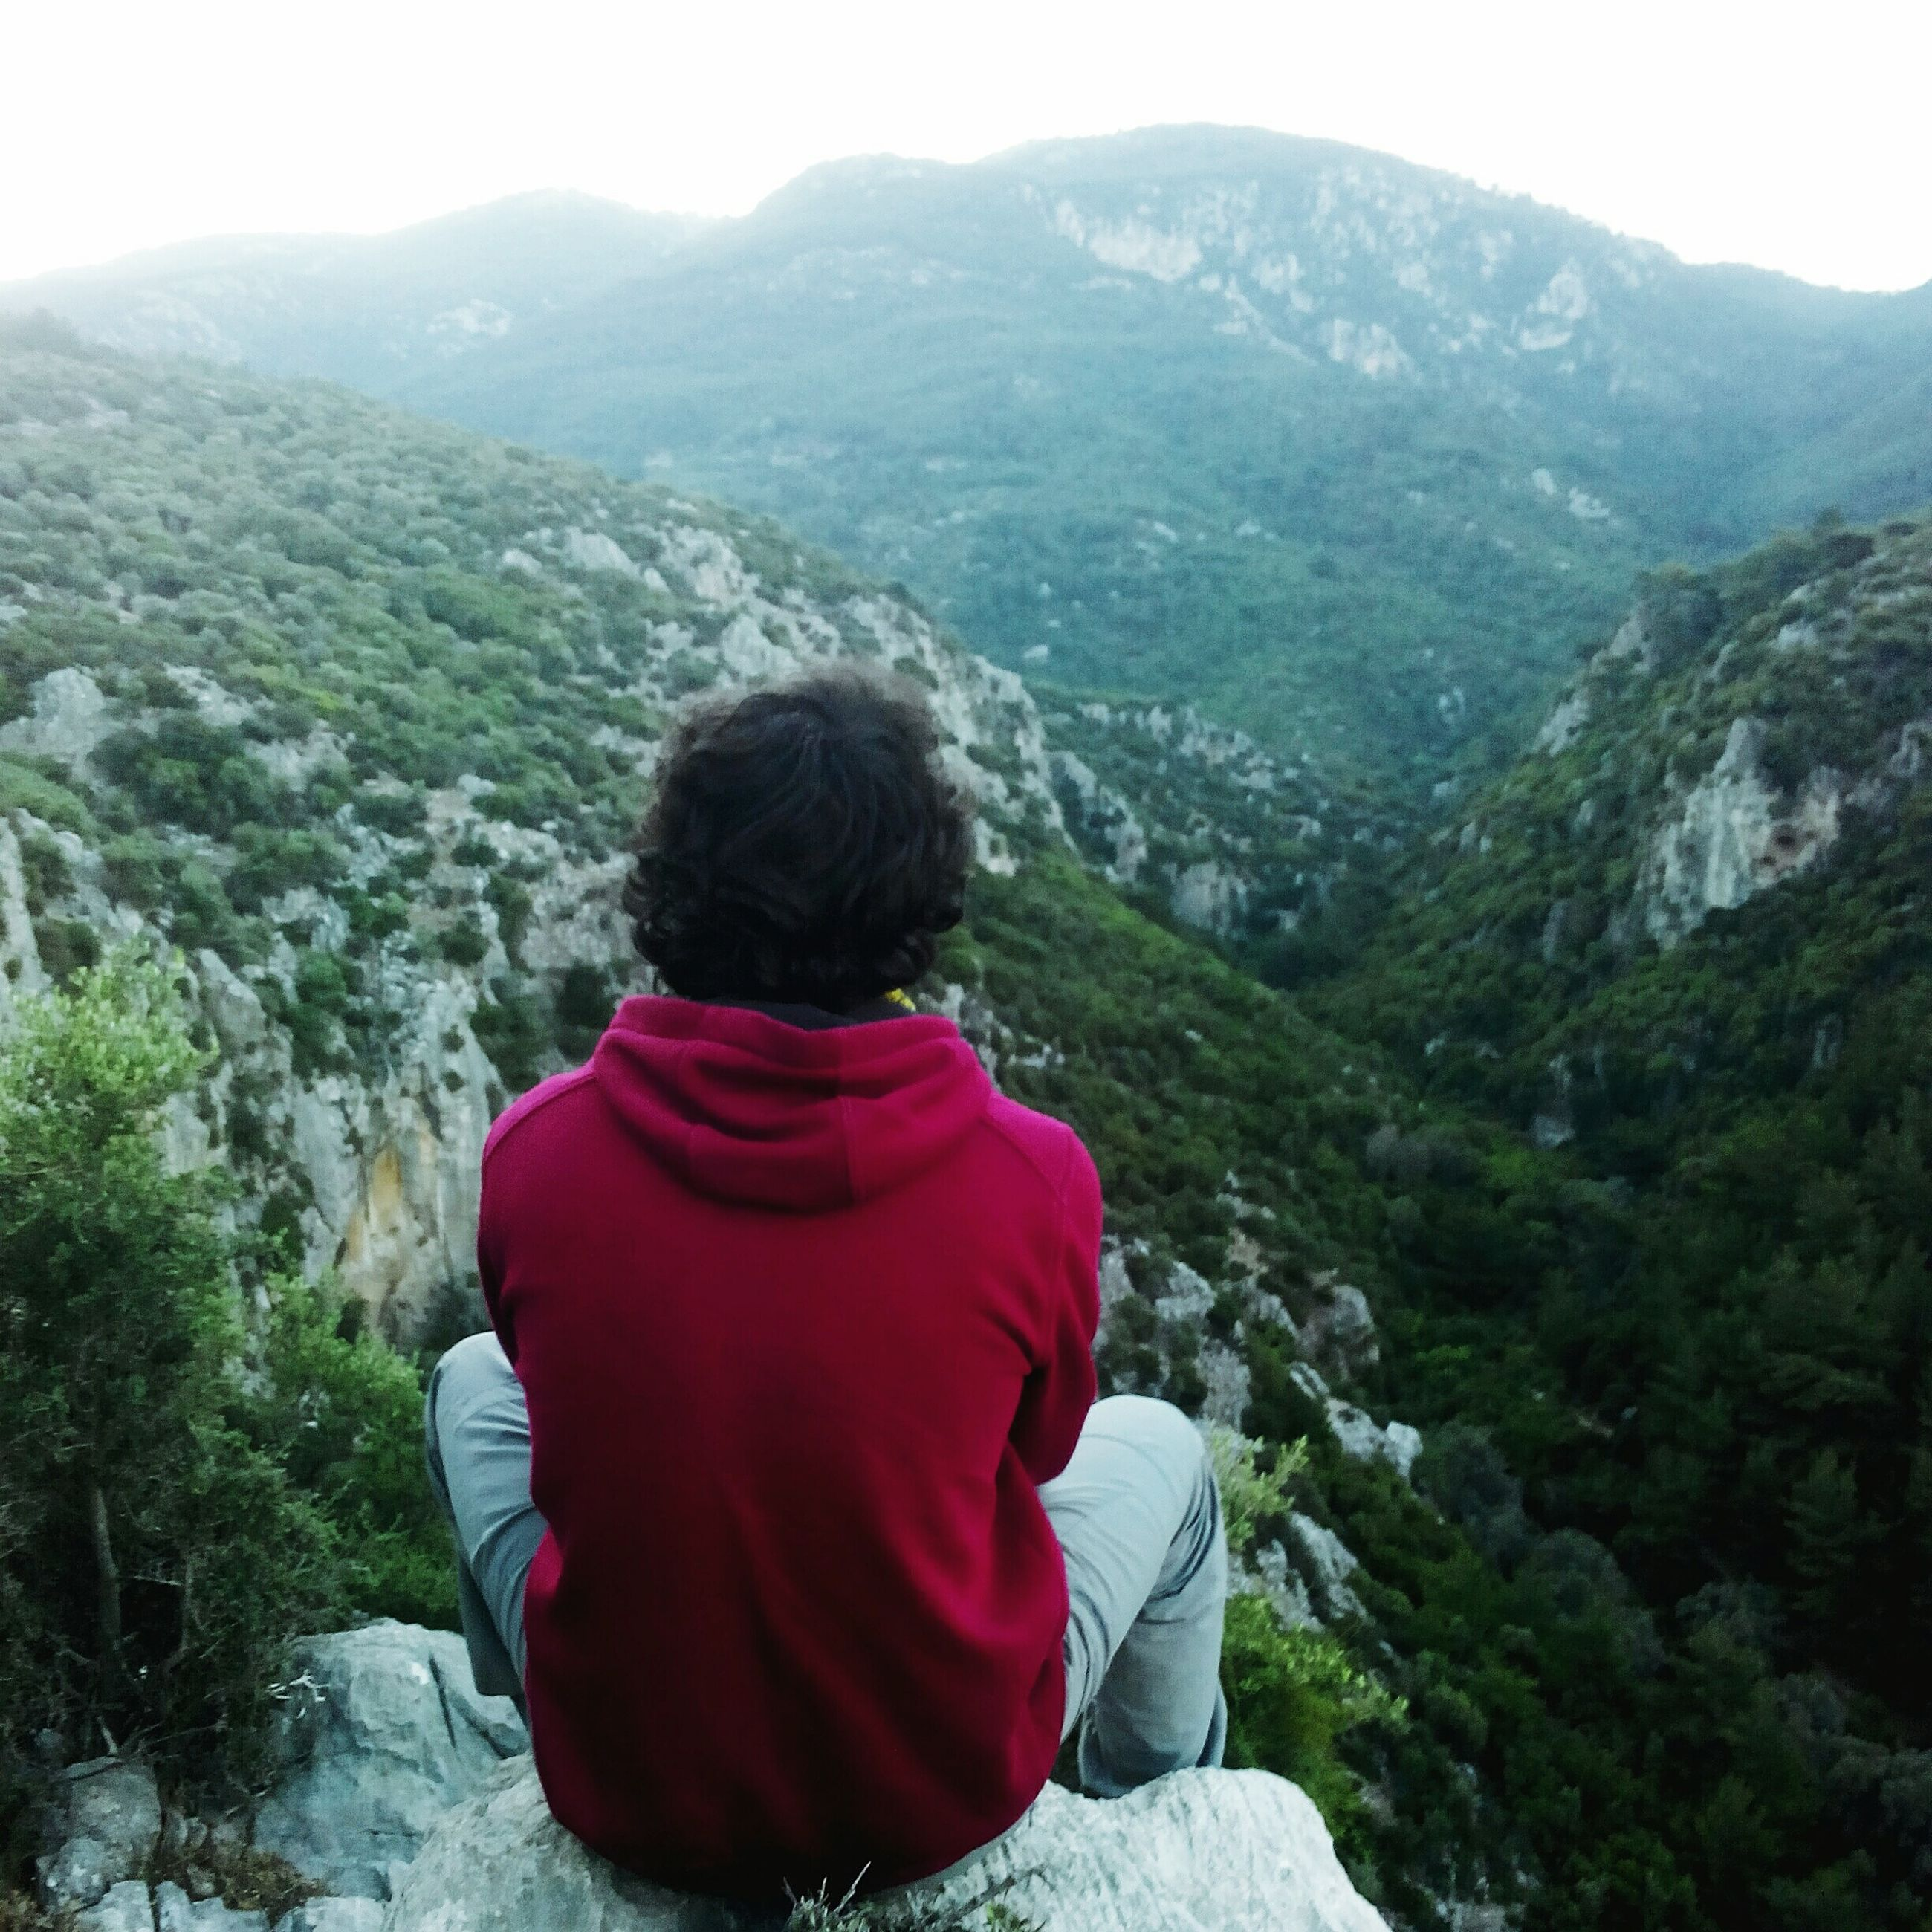 rear view, mountain, casual clothing, lifestyles, leisure activity, tranquility, beauty in nature, tranquil scene, nature, scenics, standing, landscape, tree, three quarter length, waist up, person, looking at view, non-urban scene